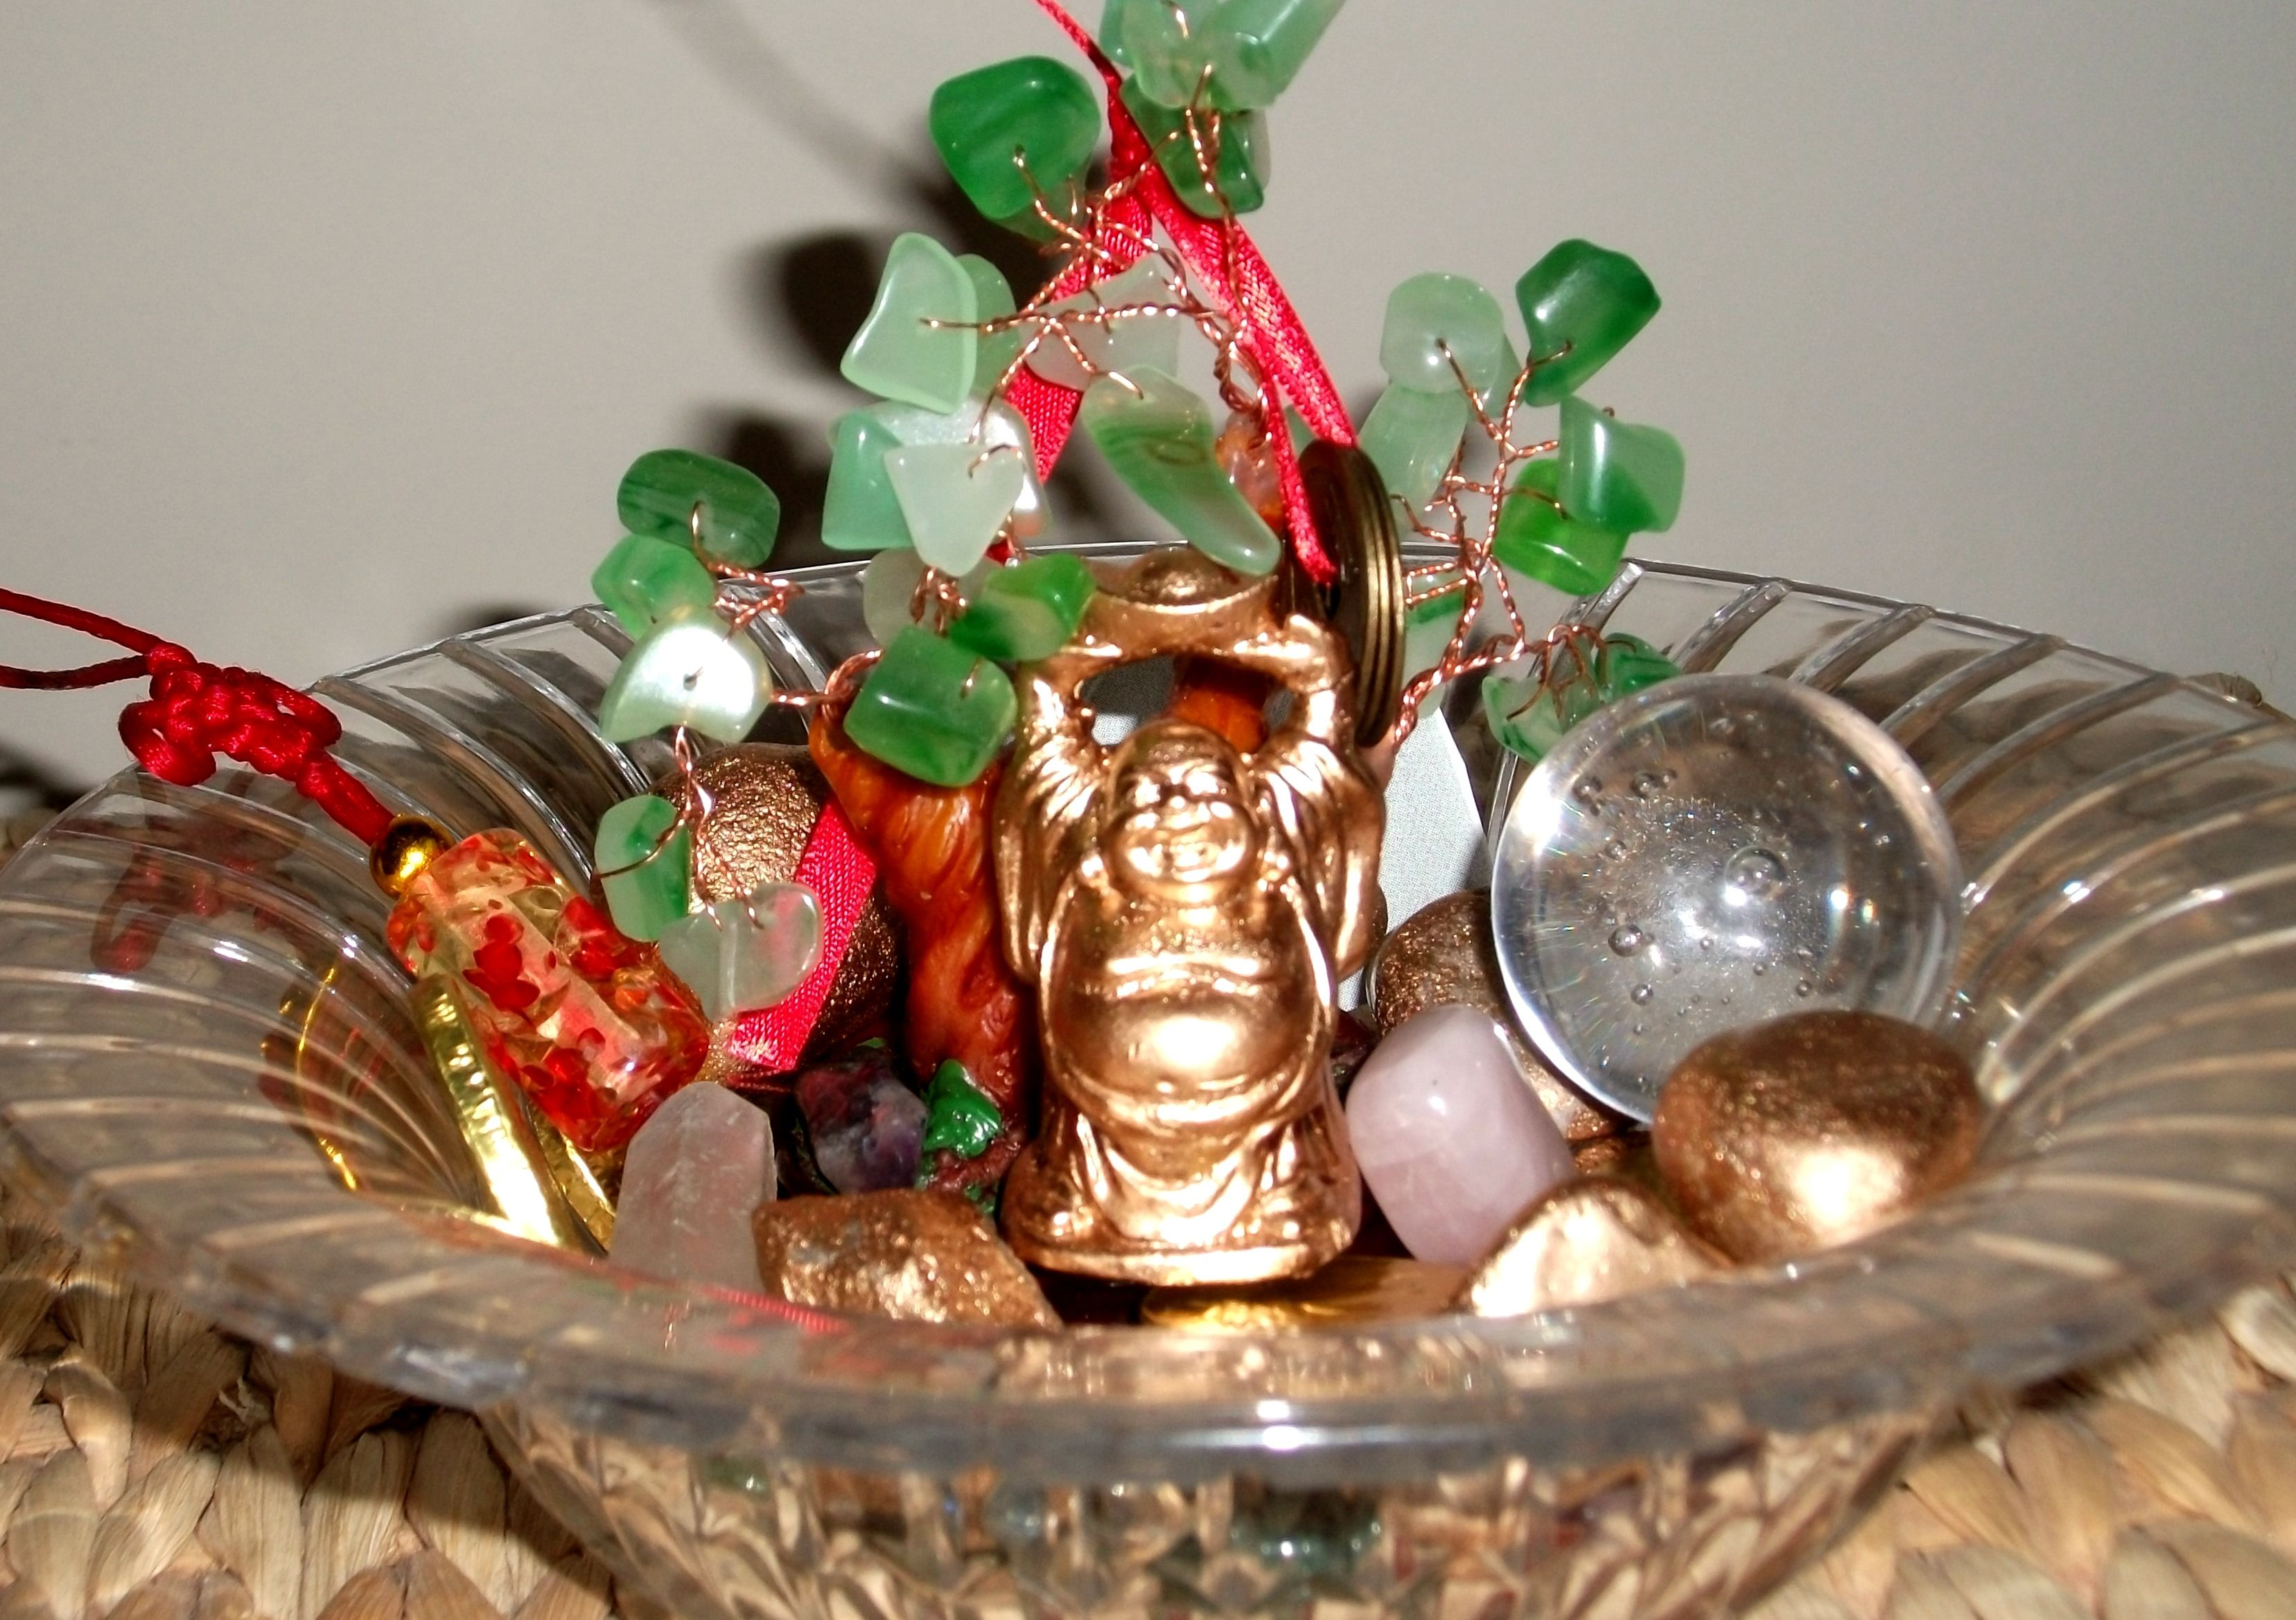 Create a feng shui wealth bowl to stimulate your prosperity energy a feng shui wealth bowl is different than a wealth vase tips to build your own wealth bowl reviewsmspy